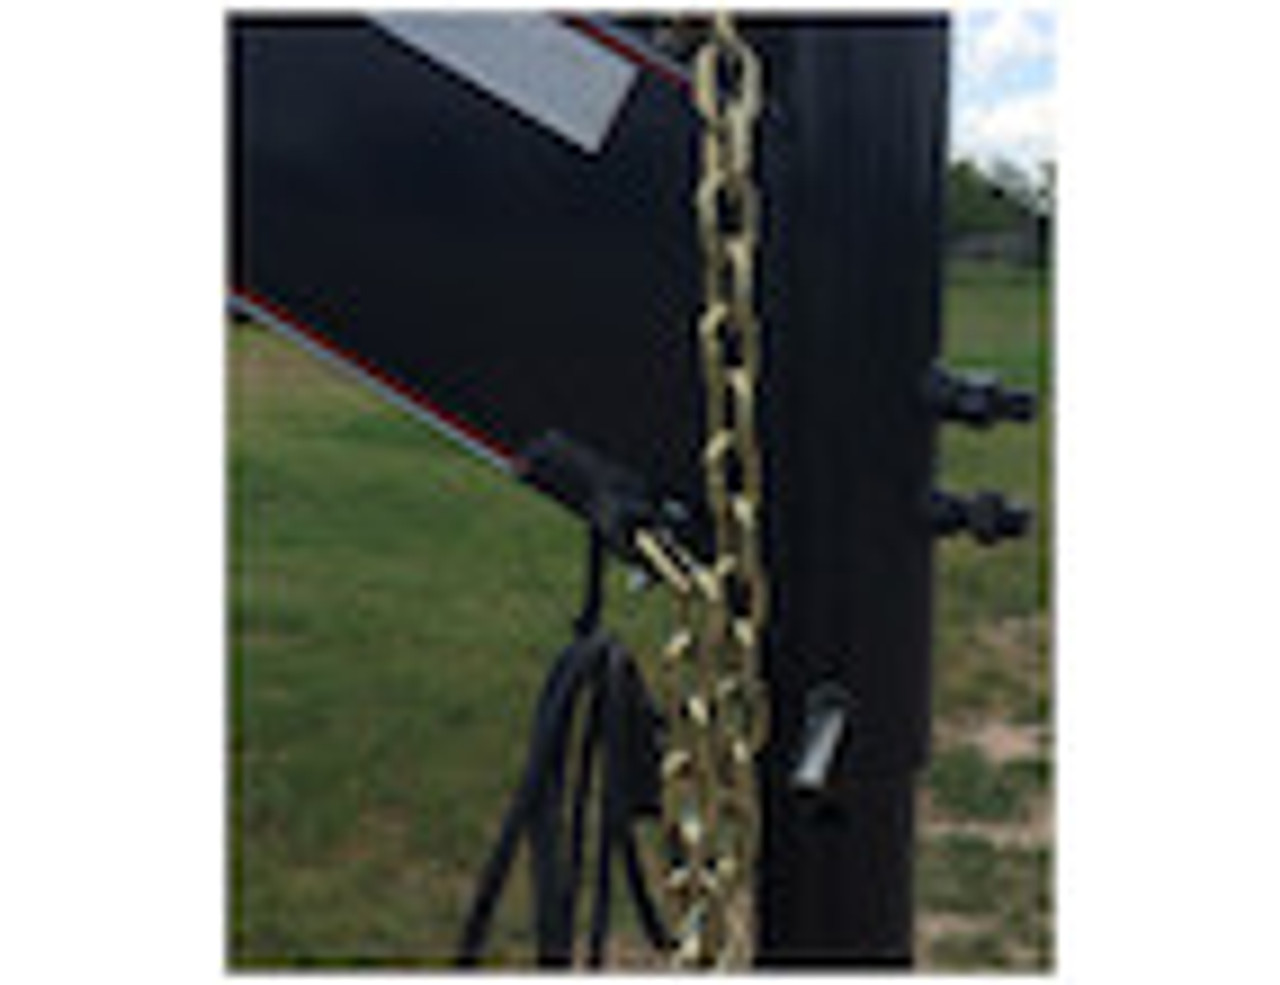 WOSC516 --- Weld-On Safety Chain Anchor